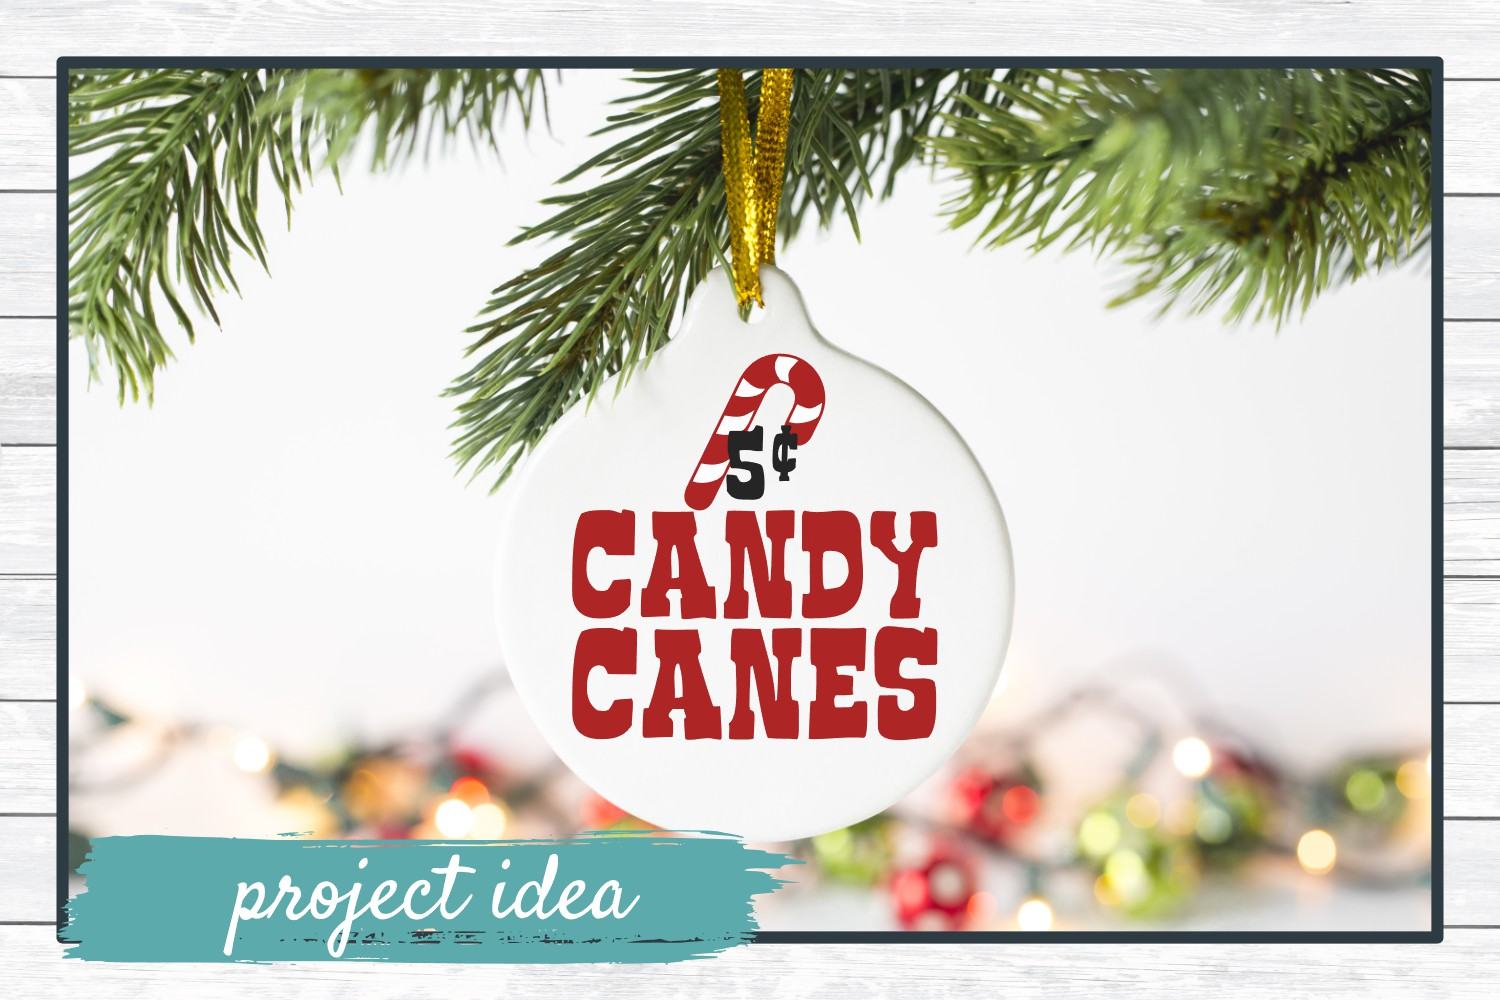 Candy Canes 5 Cents, Christmas Winter Holiday SVG Cut File example image 2